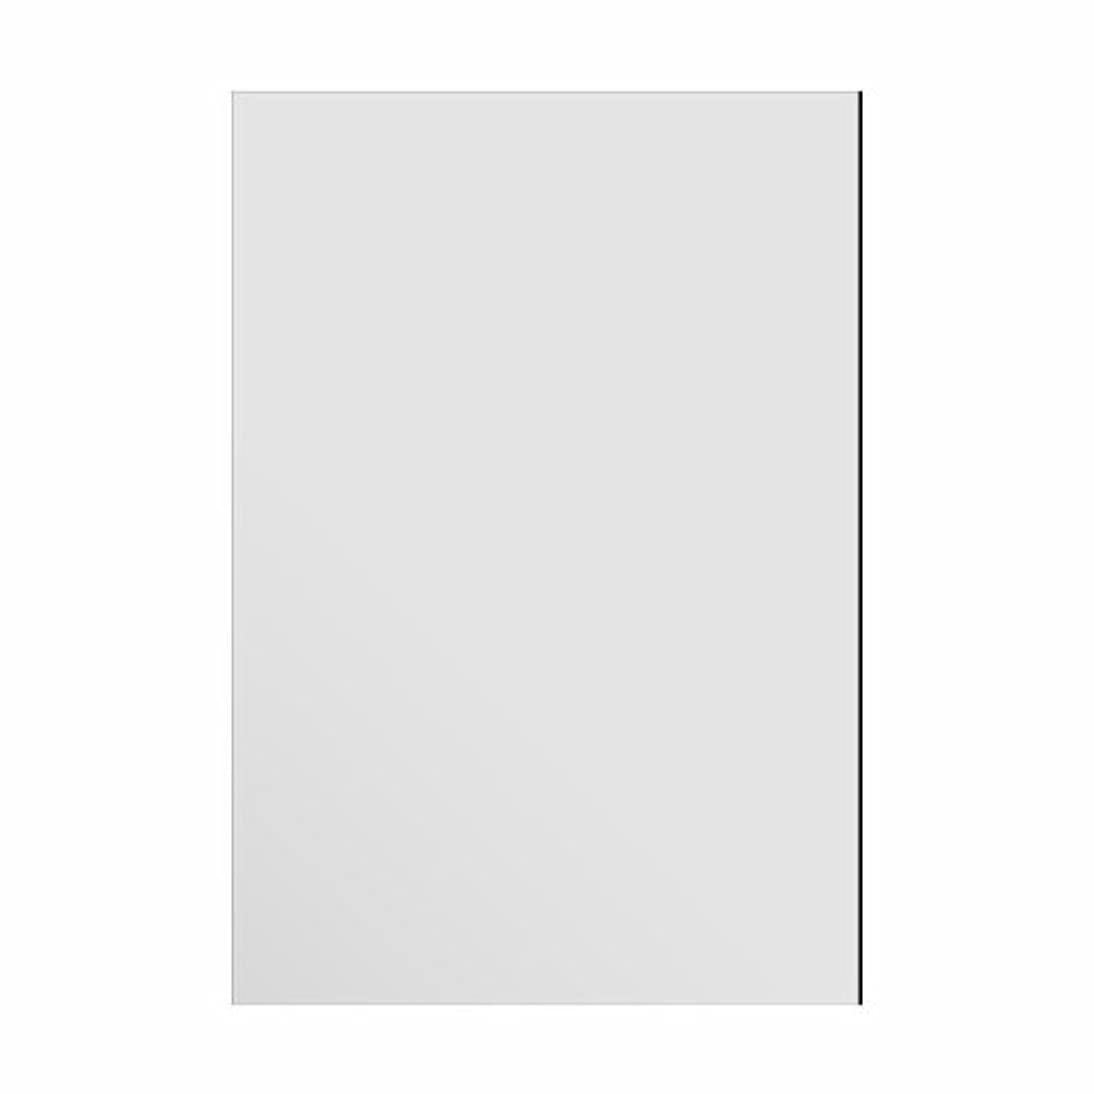 Midwest Products 703-03 Super Sheets, 0.040 Inch, Clear Polyester